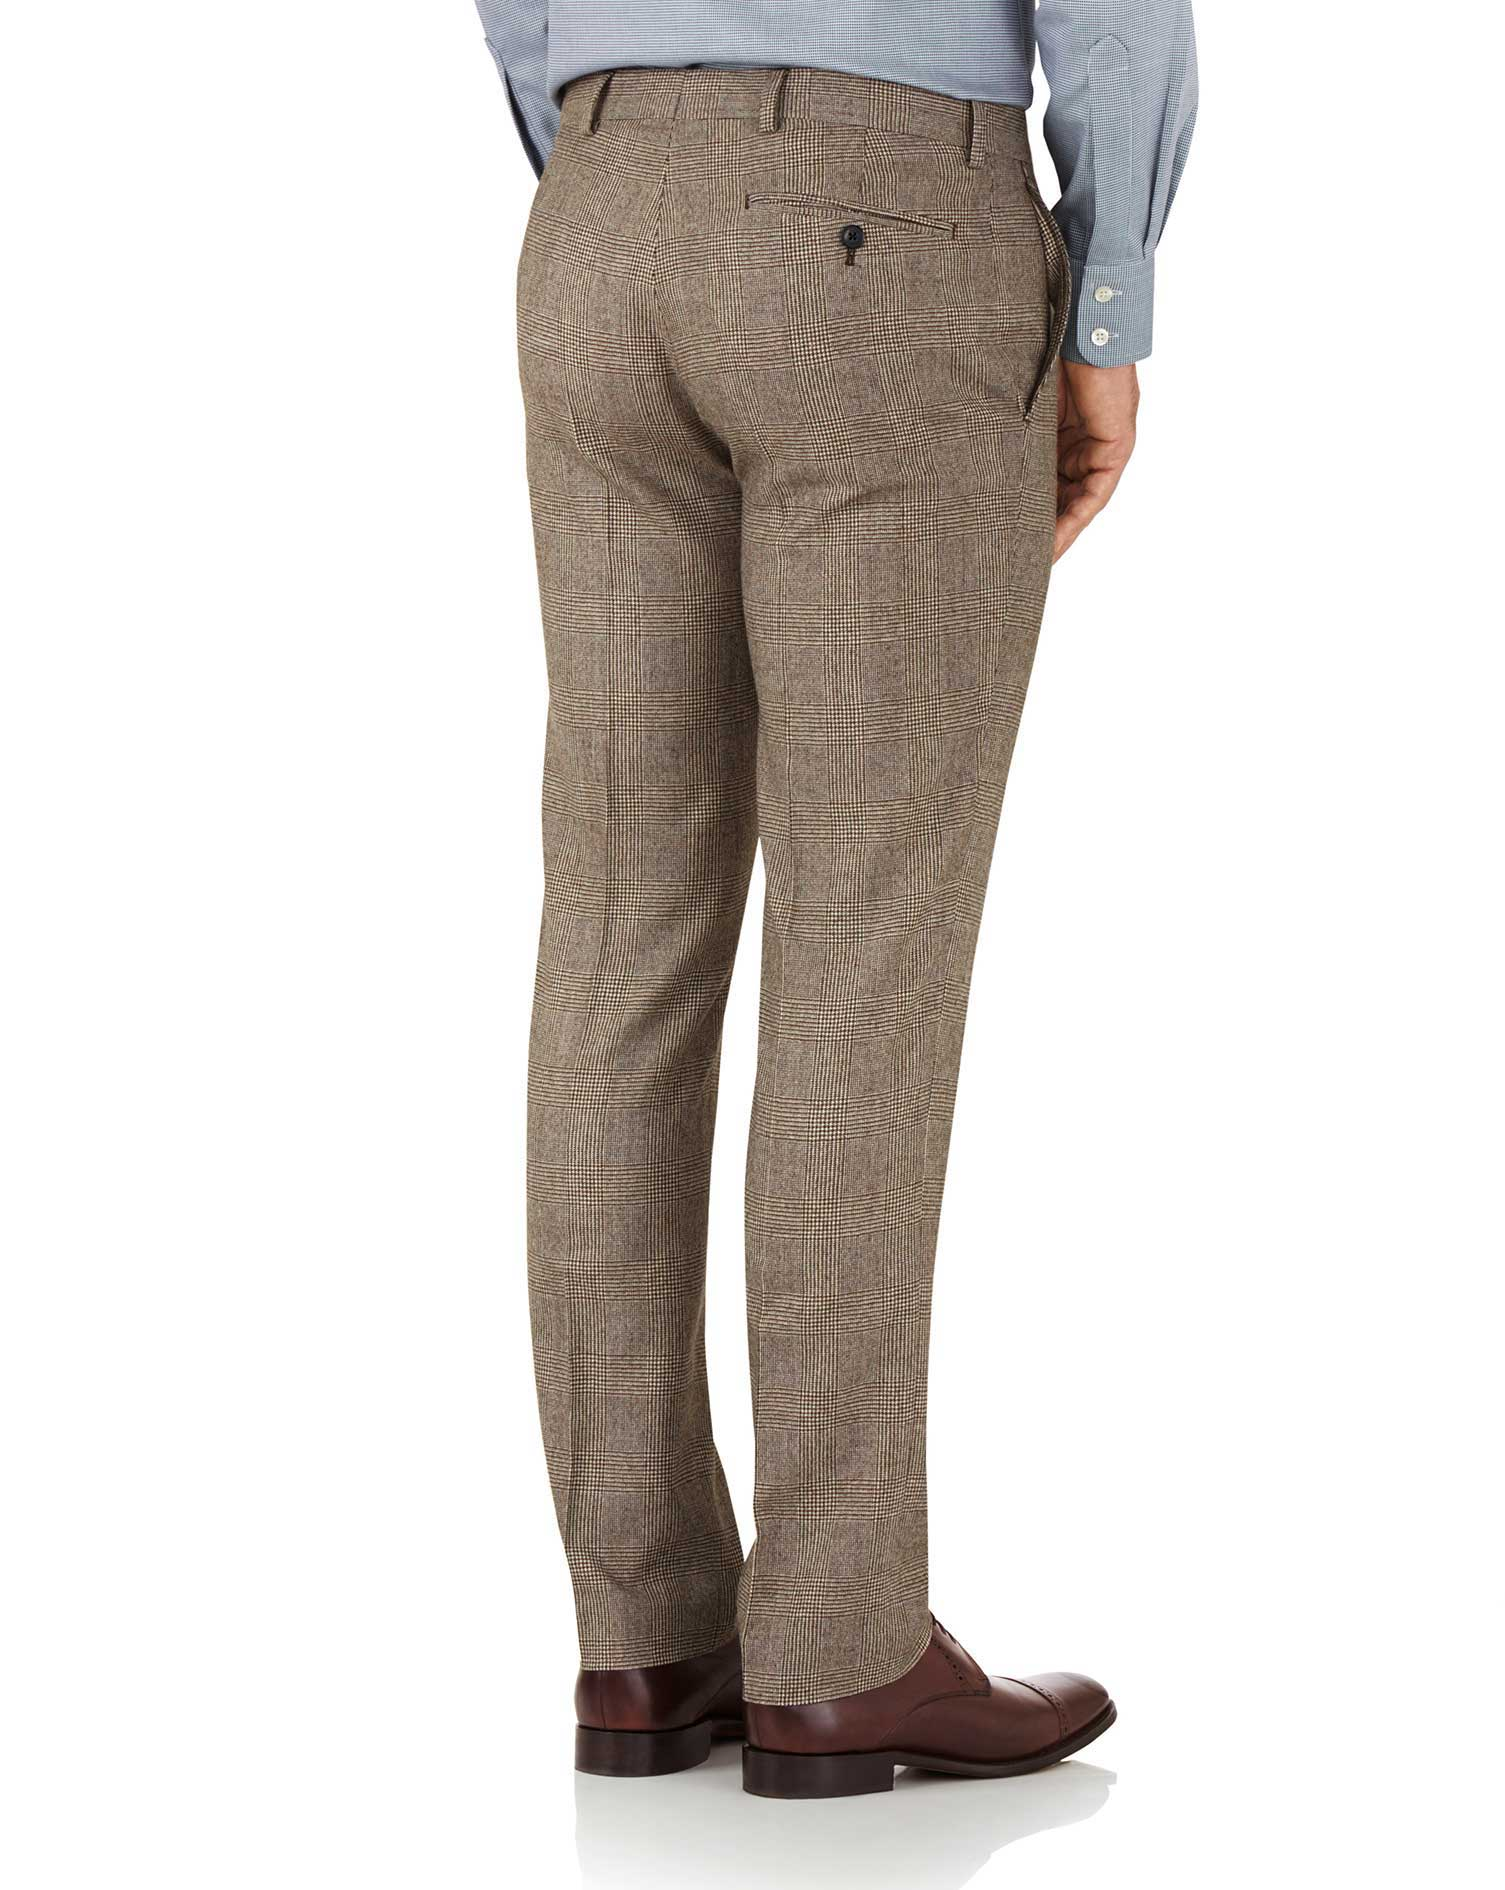 Tan check slim fit British serge luxury suit pants